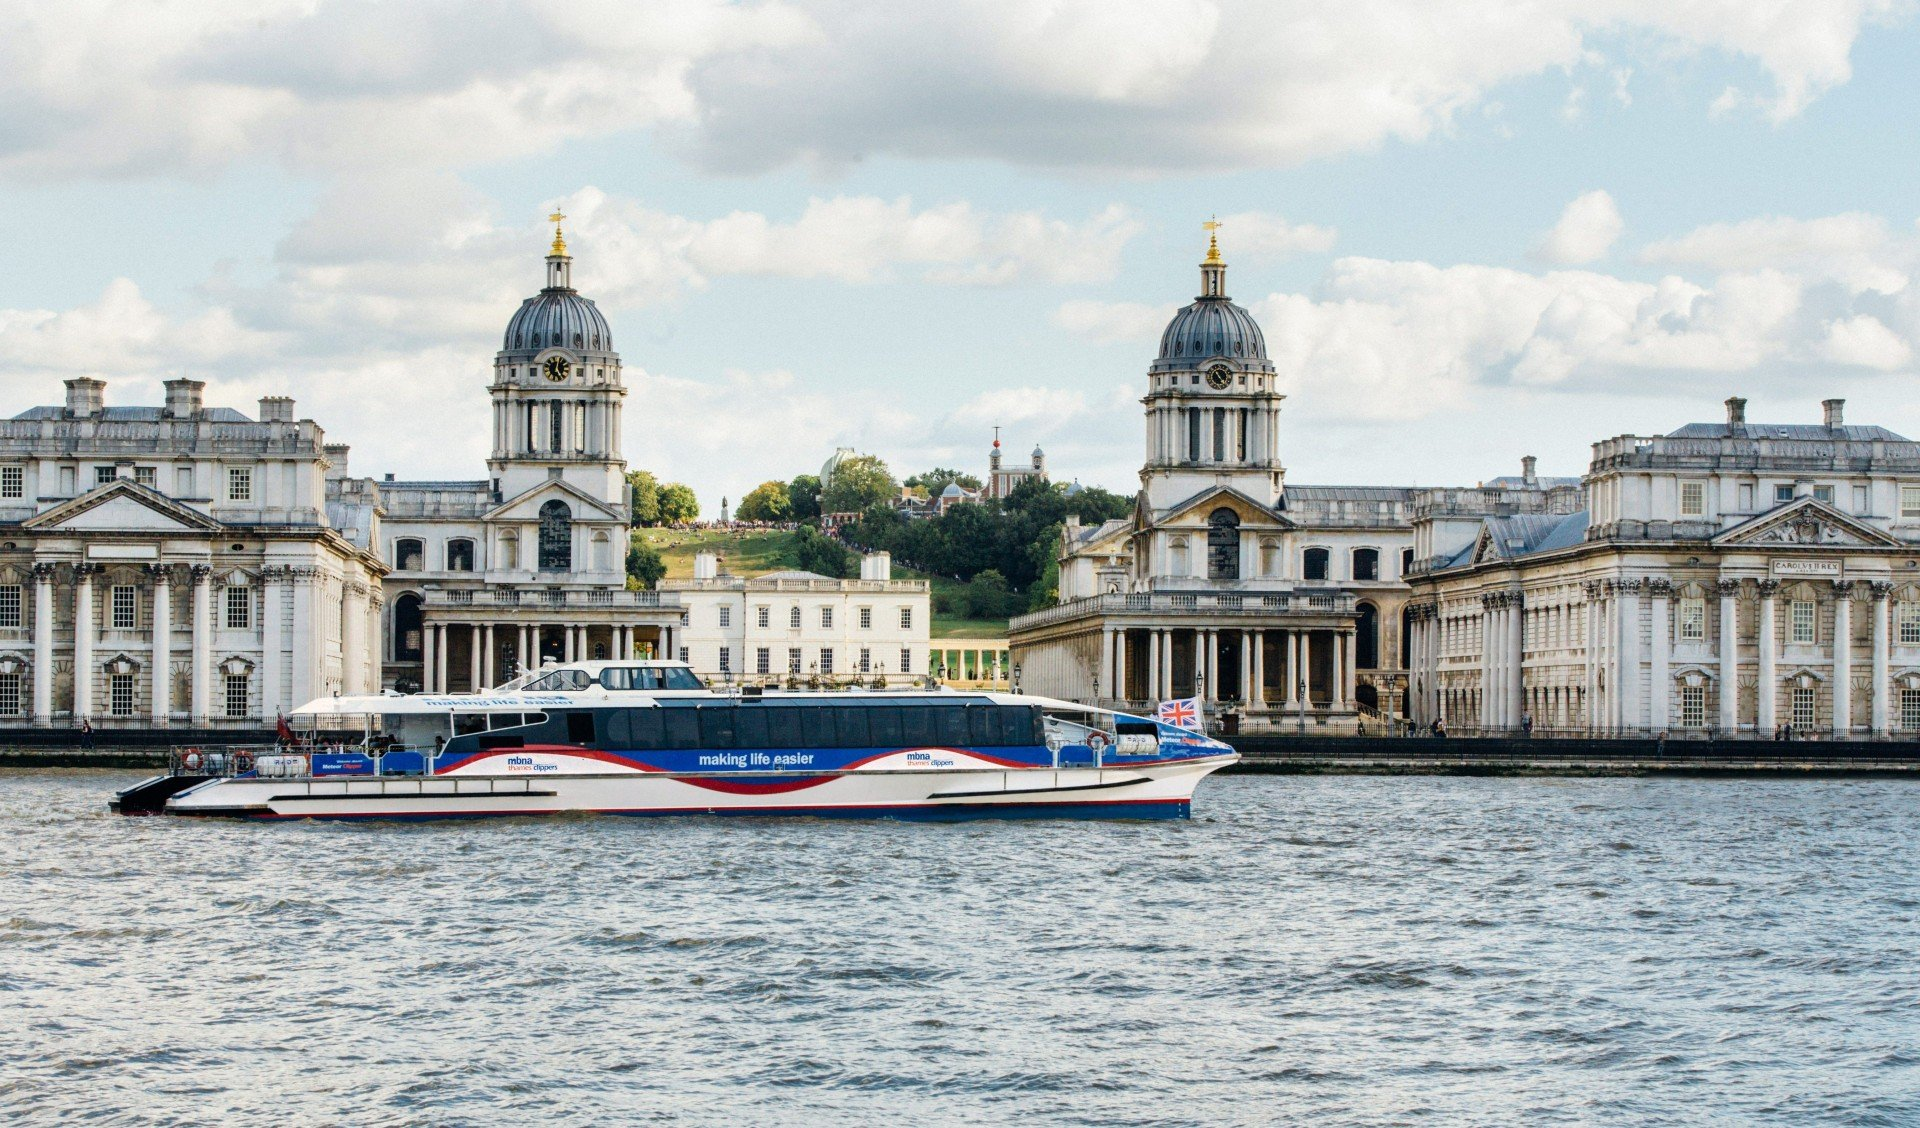 Arriving at old royal naval college by boat as a quirky christmas party idea